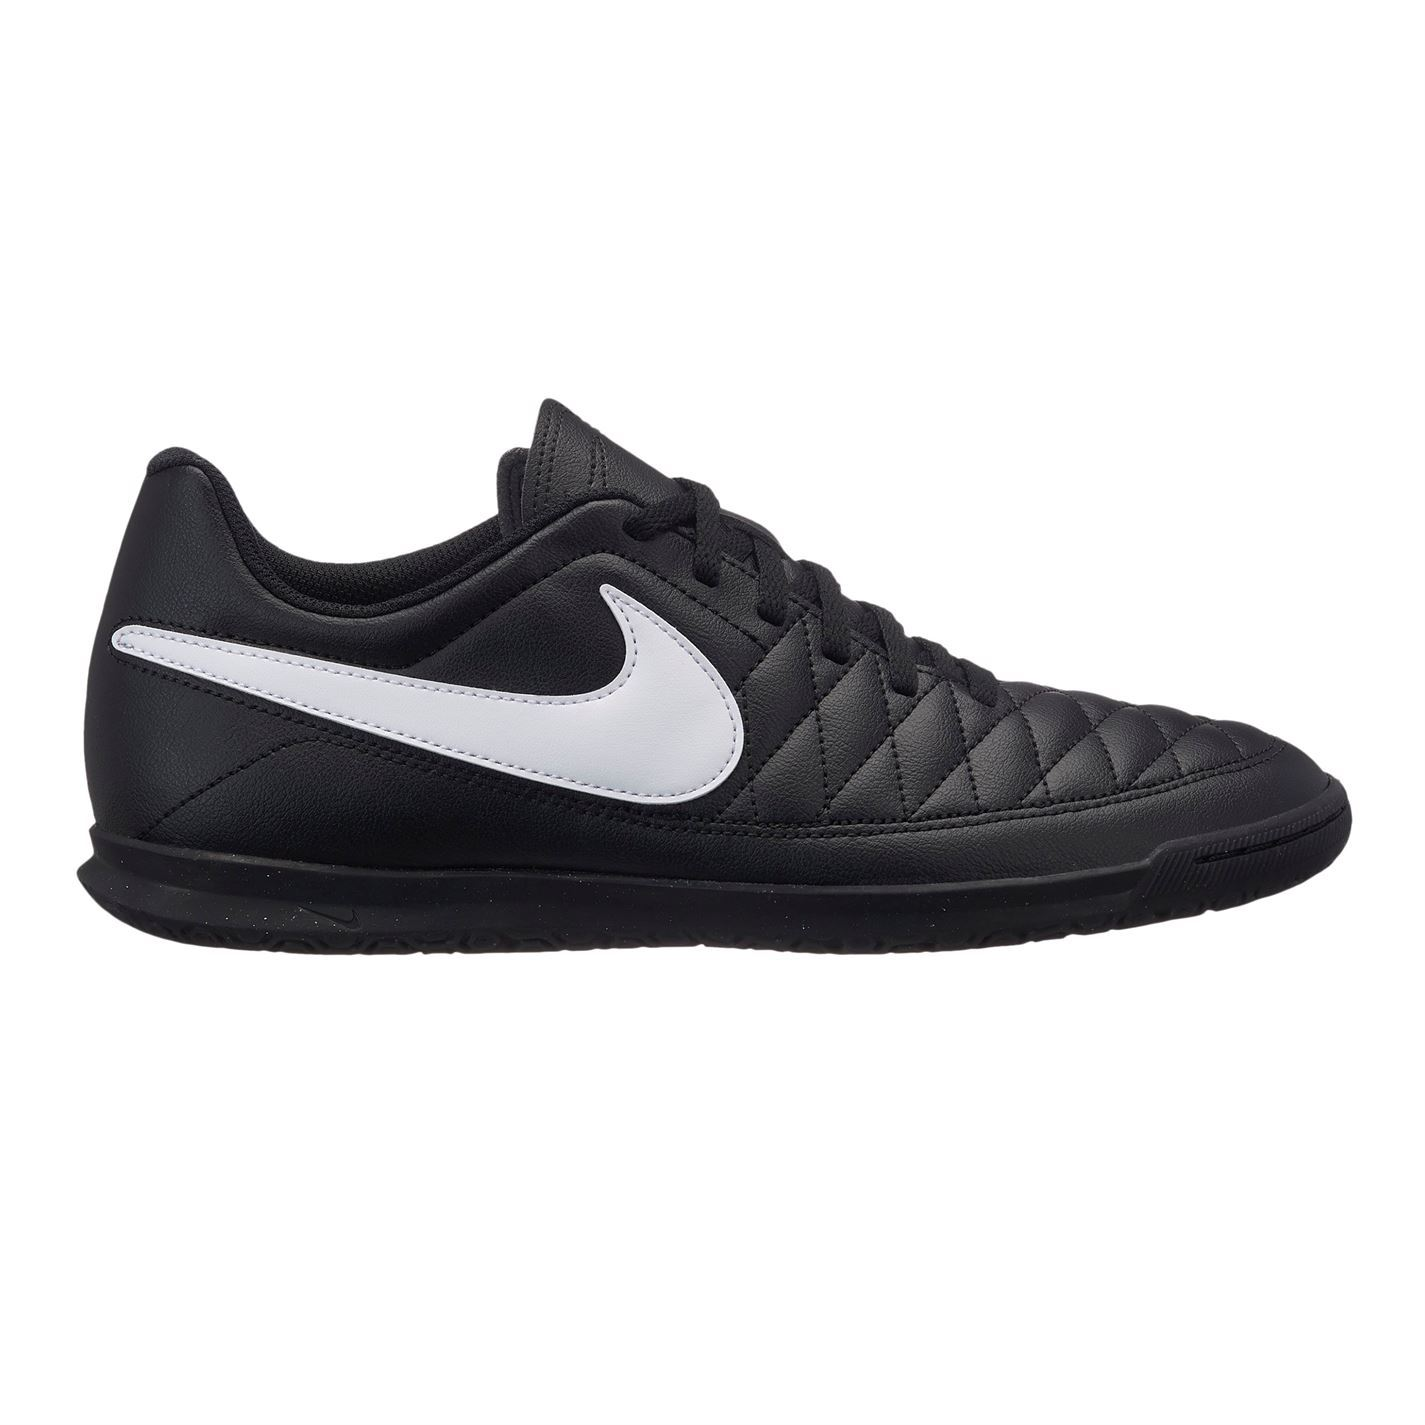 Nike-majestry-Indoor-Football-Baskets-Pour-Homme-Football-Futsal-Chaussures-Baskets-Bottes miniature 17